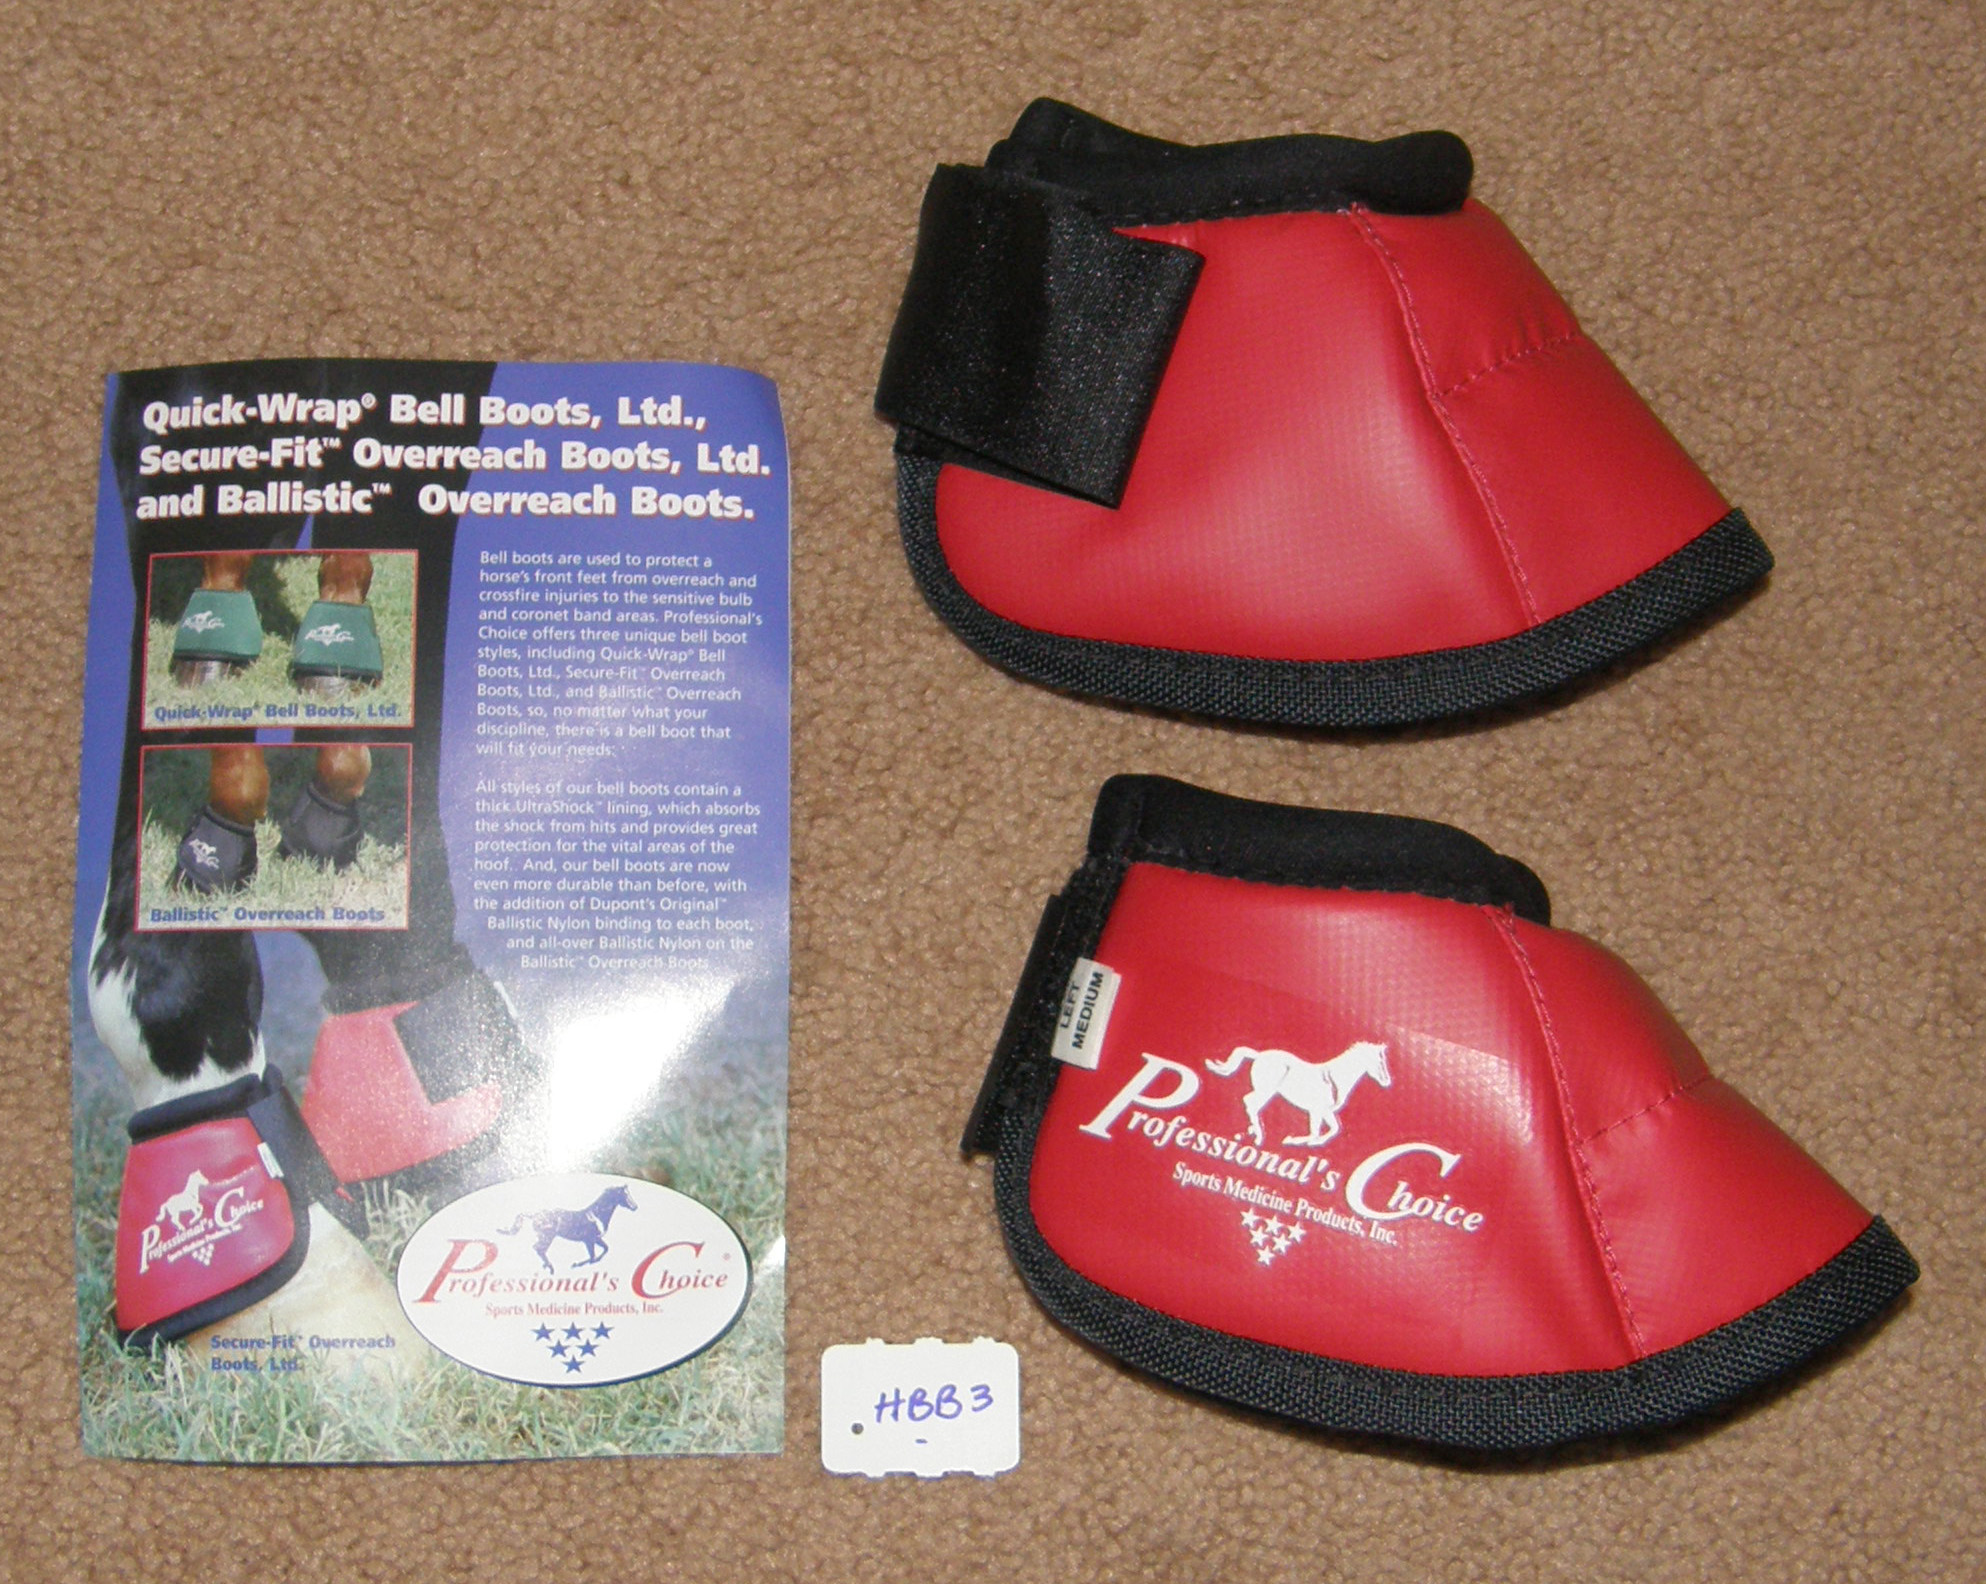 Professional's Choice Secure Fit Overreach Boots No Turn Bell Boots Velcro Bell Boots M Horse Red